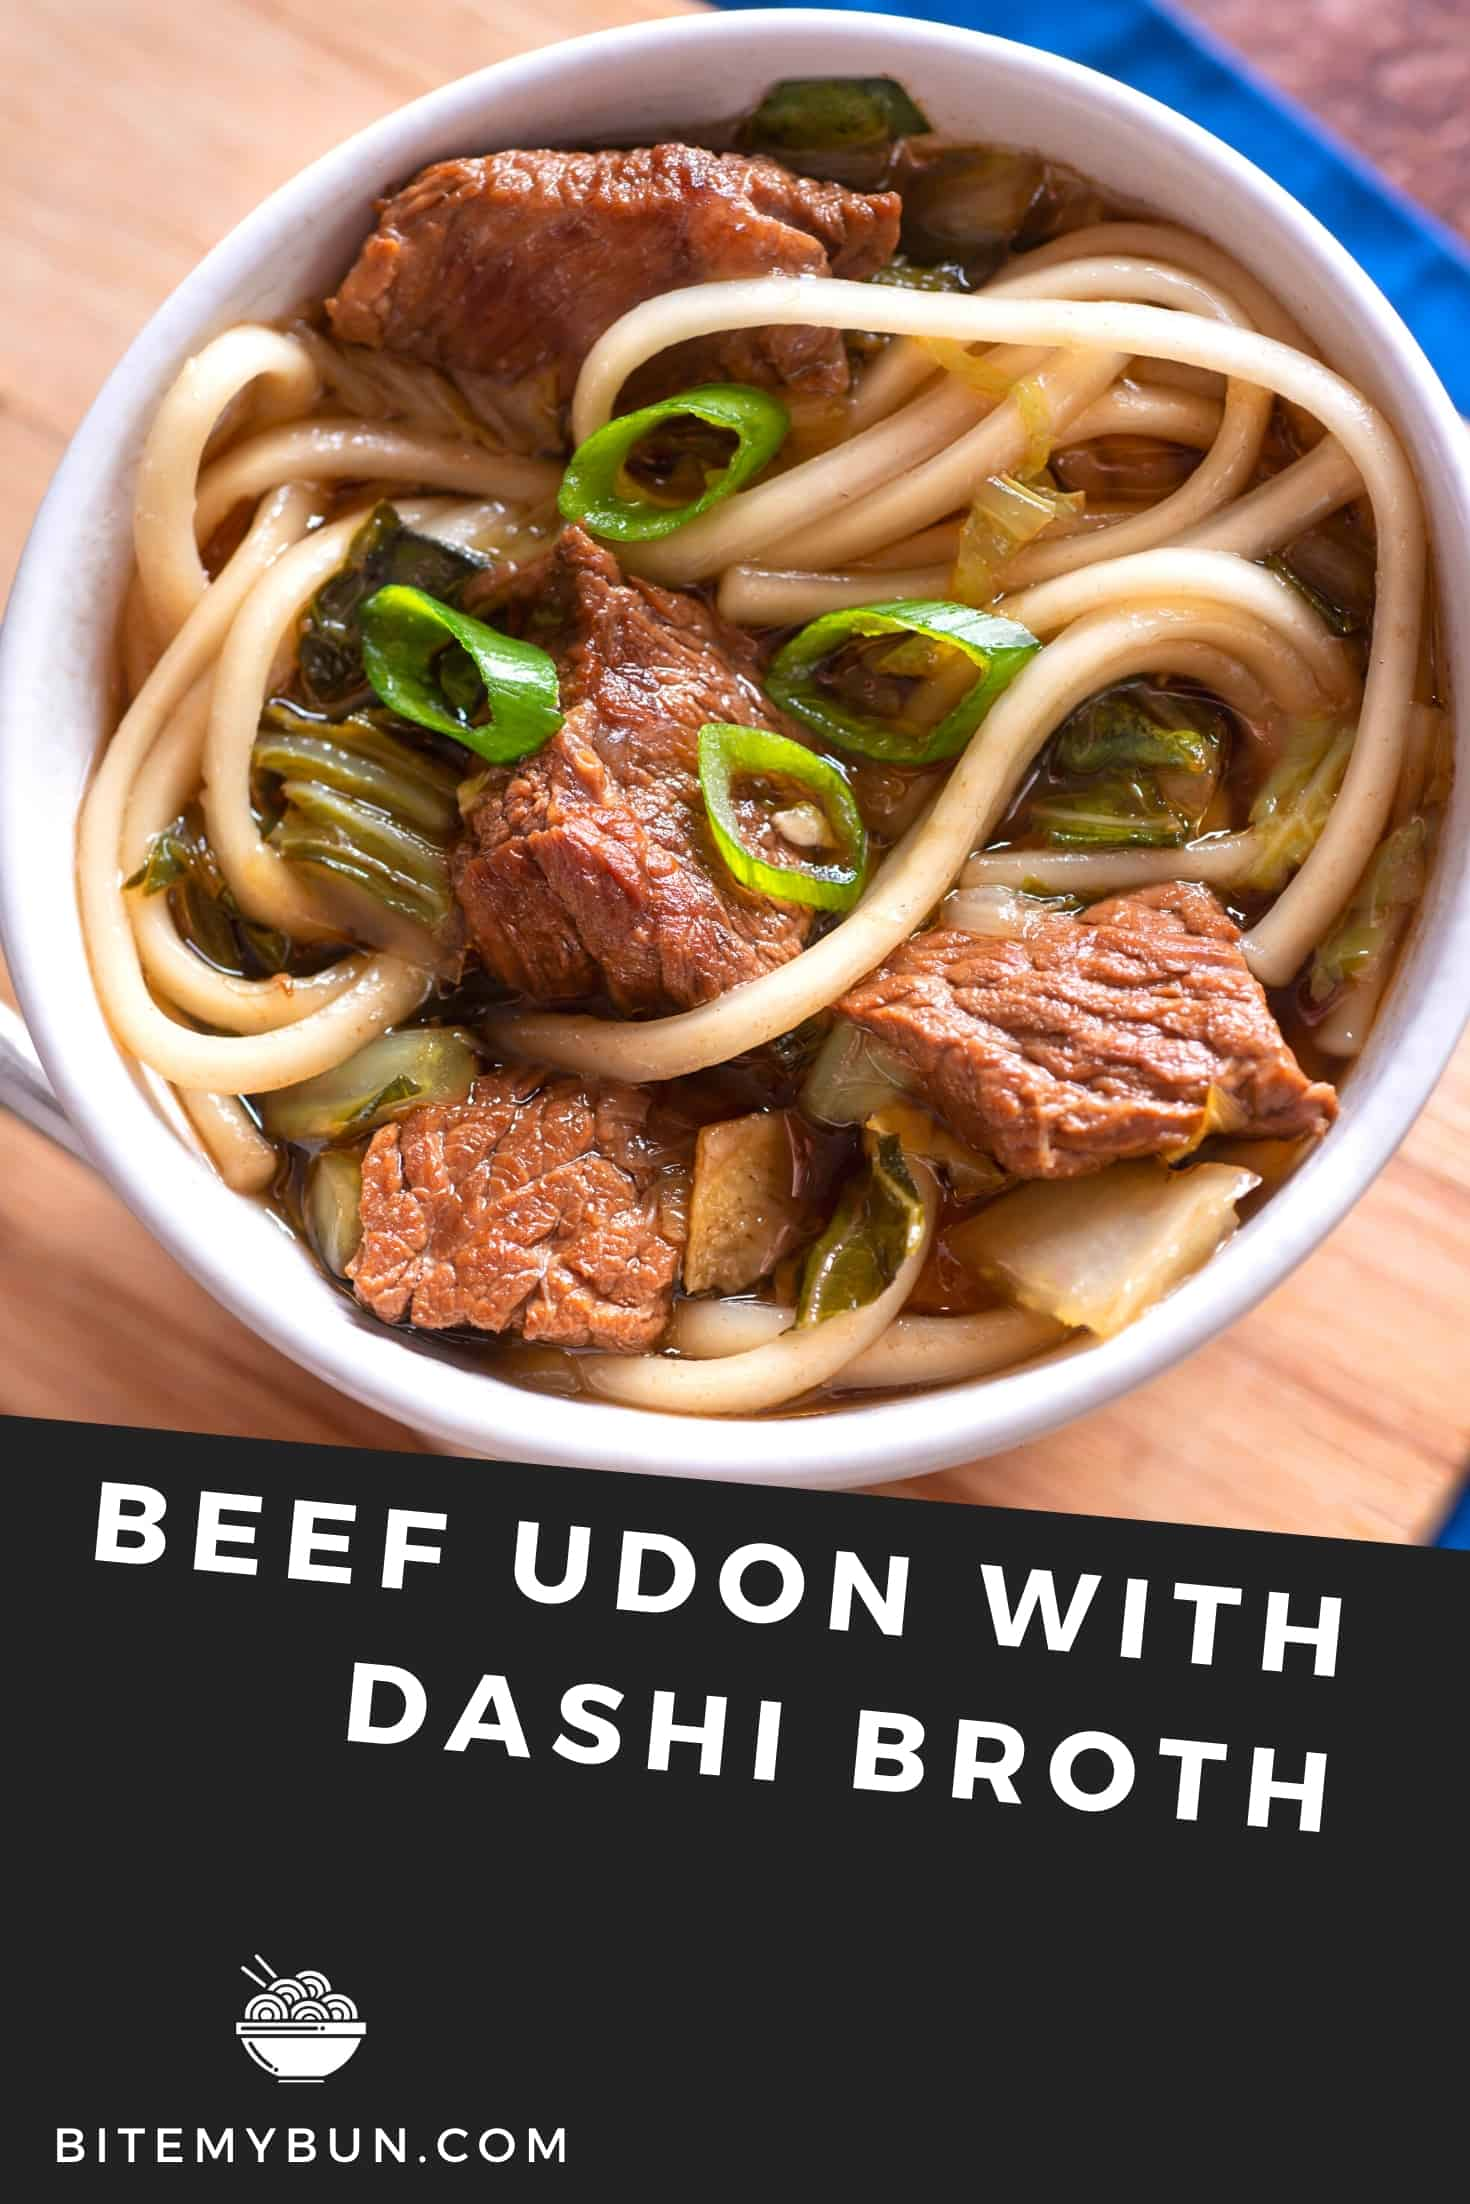 Beef Udon with Dashi broth